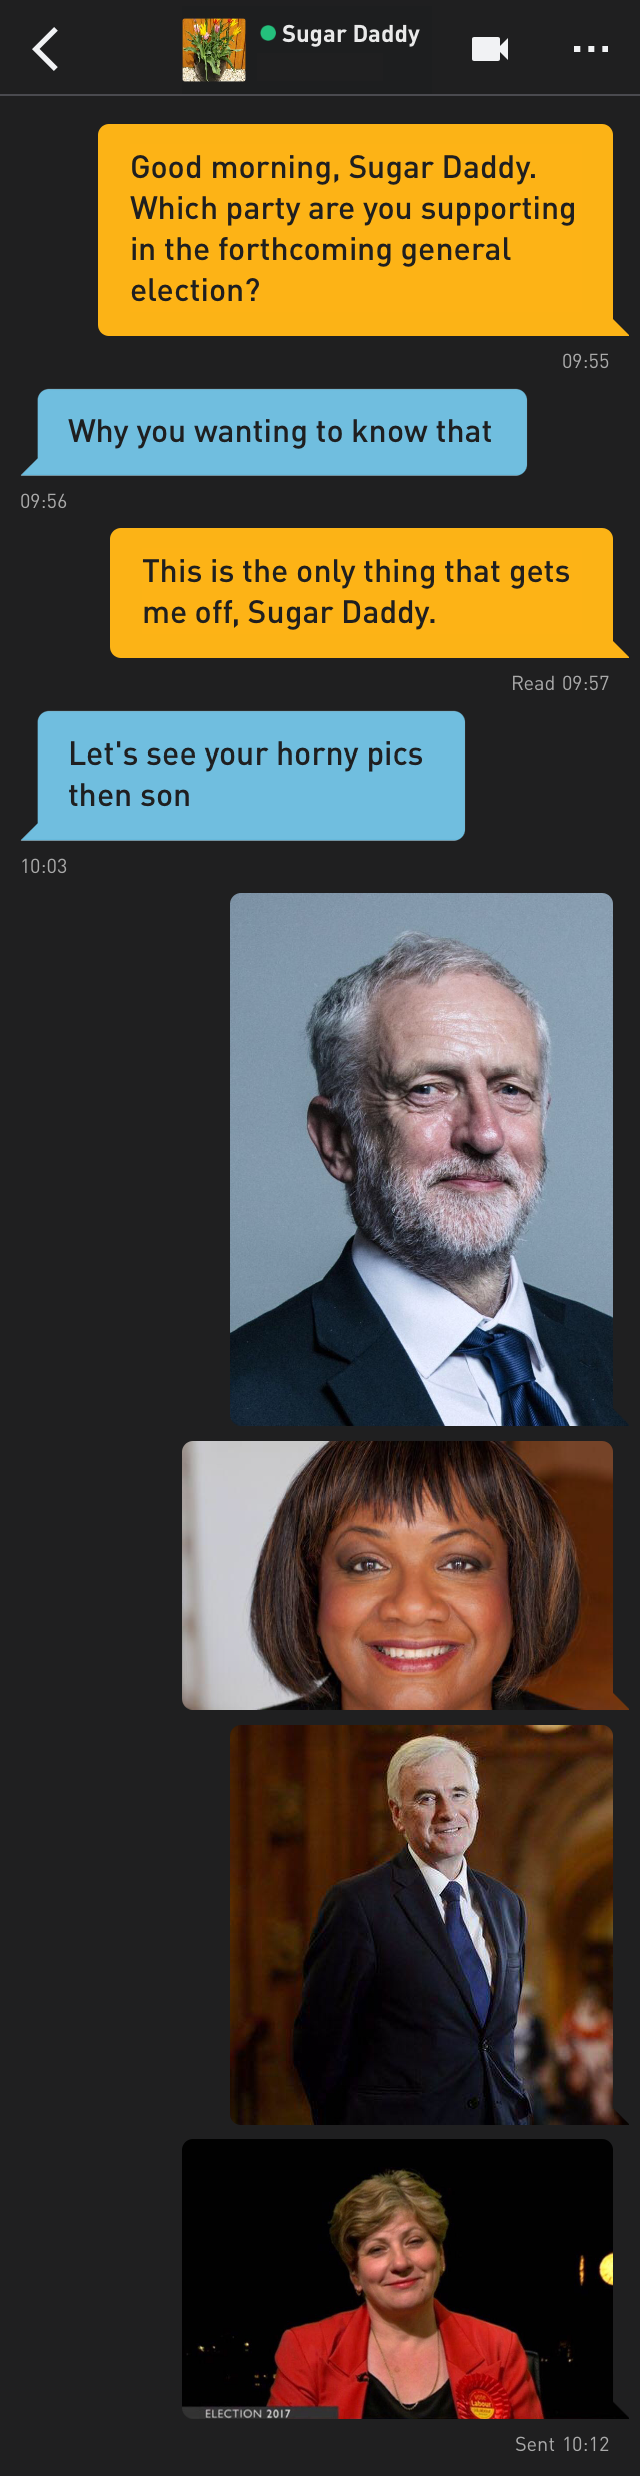 Me: Good morning, Sugar Daddy. Which party are you supporting in the forthcoming general election?